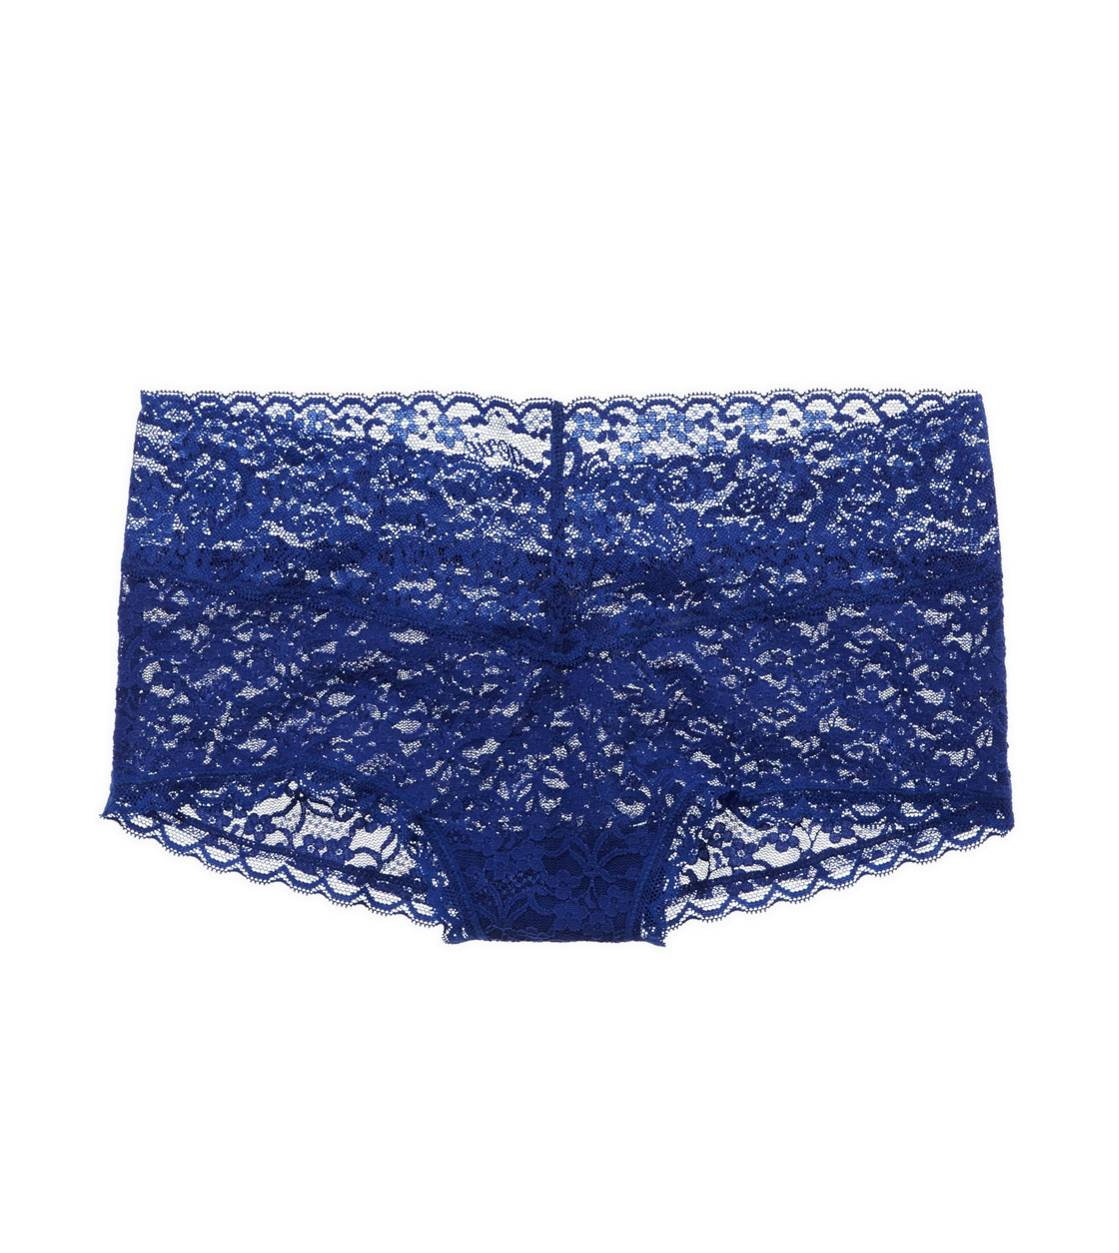 Blue Tonic Aerie Vintage Lace Girly Short